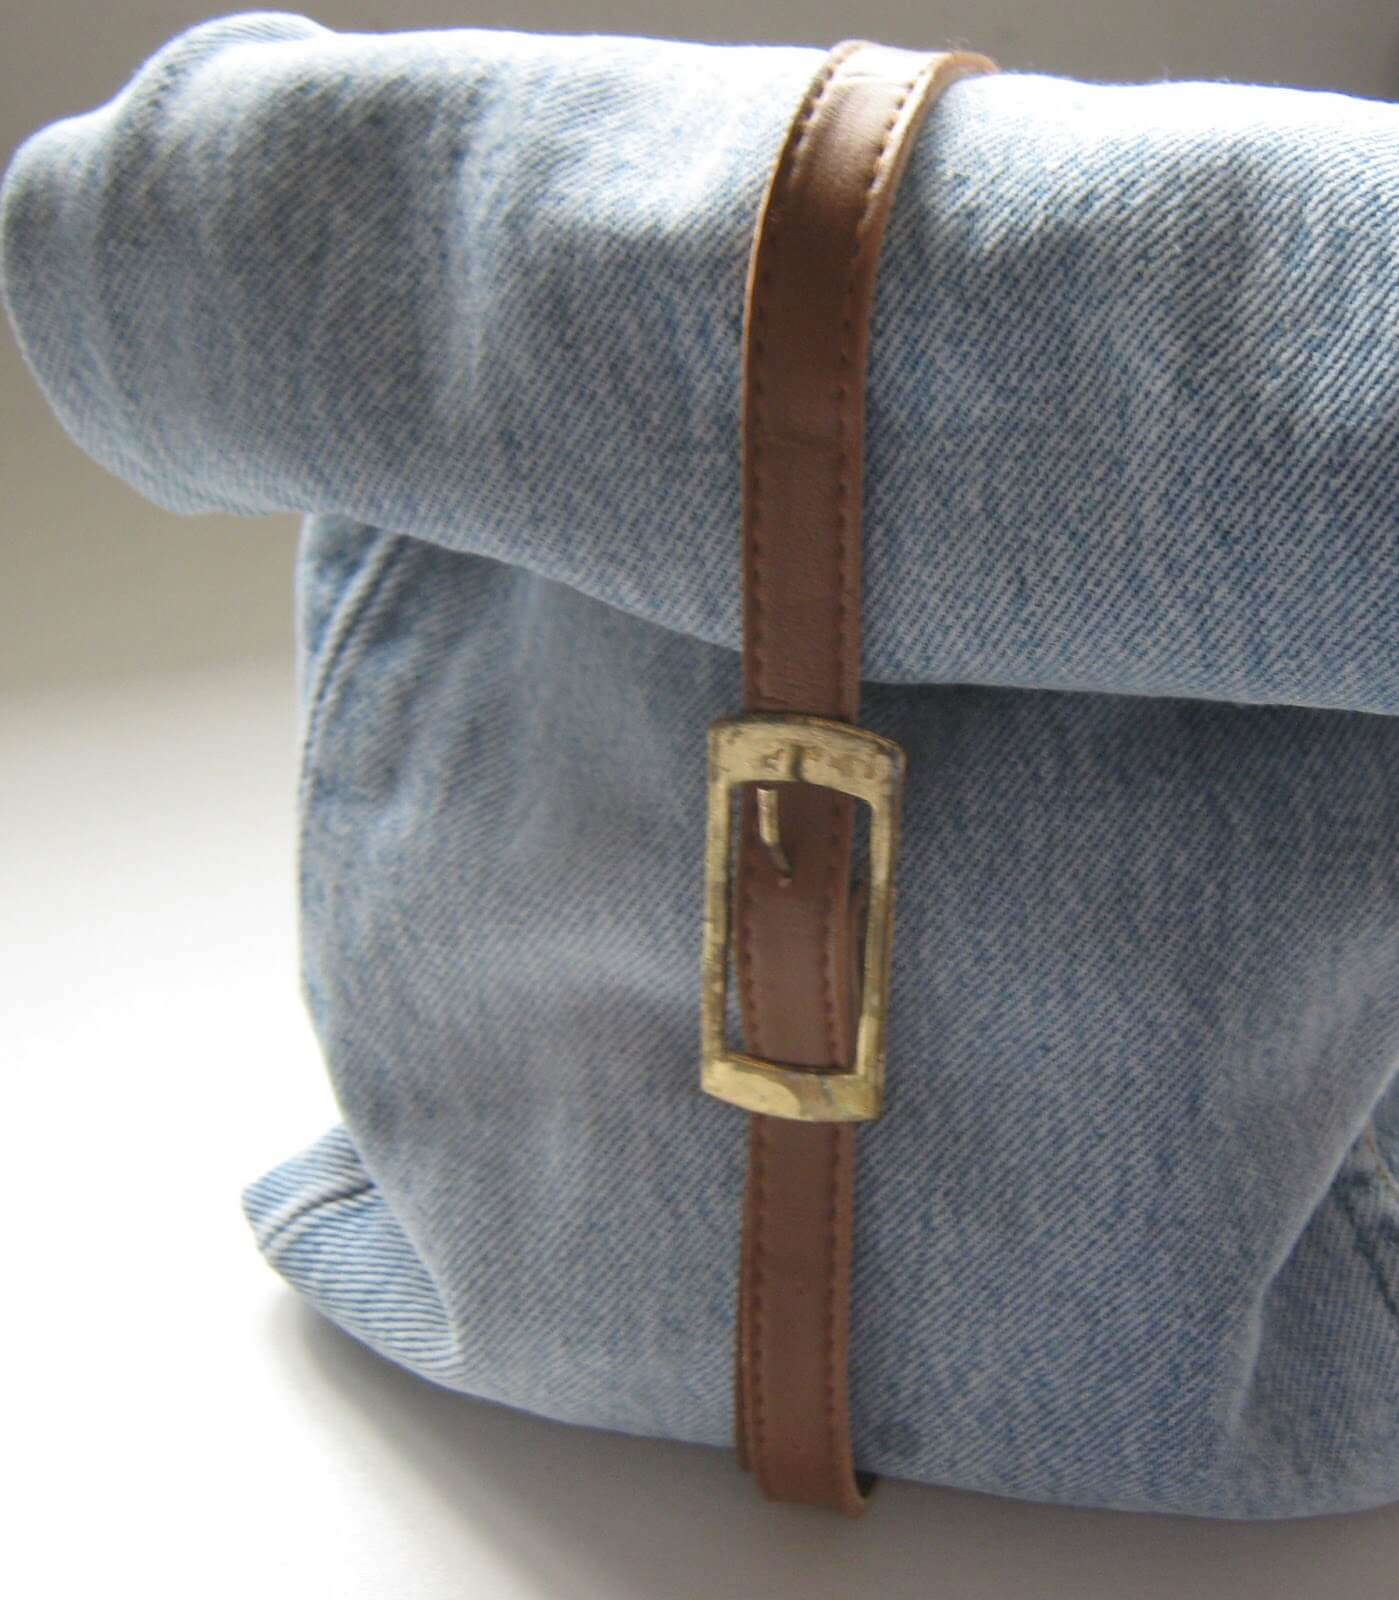 #9 Denim Lunch Bags | Sophisticated Lunch Carriers | Image Source: thisishowwedoitstyle.blogspot.com